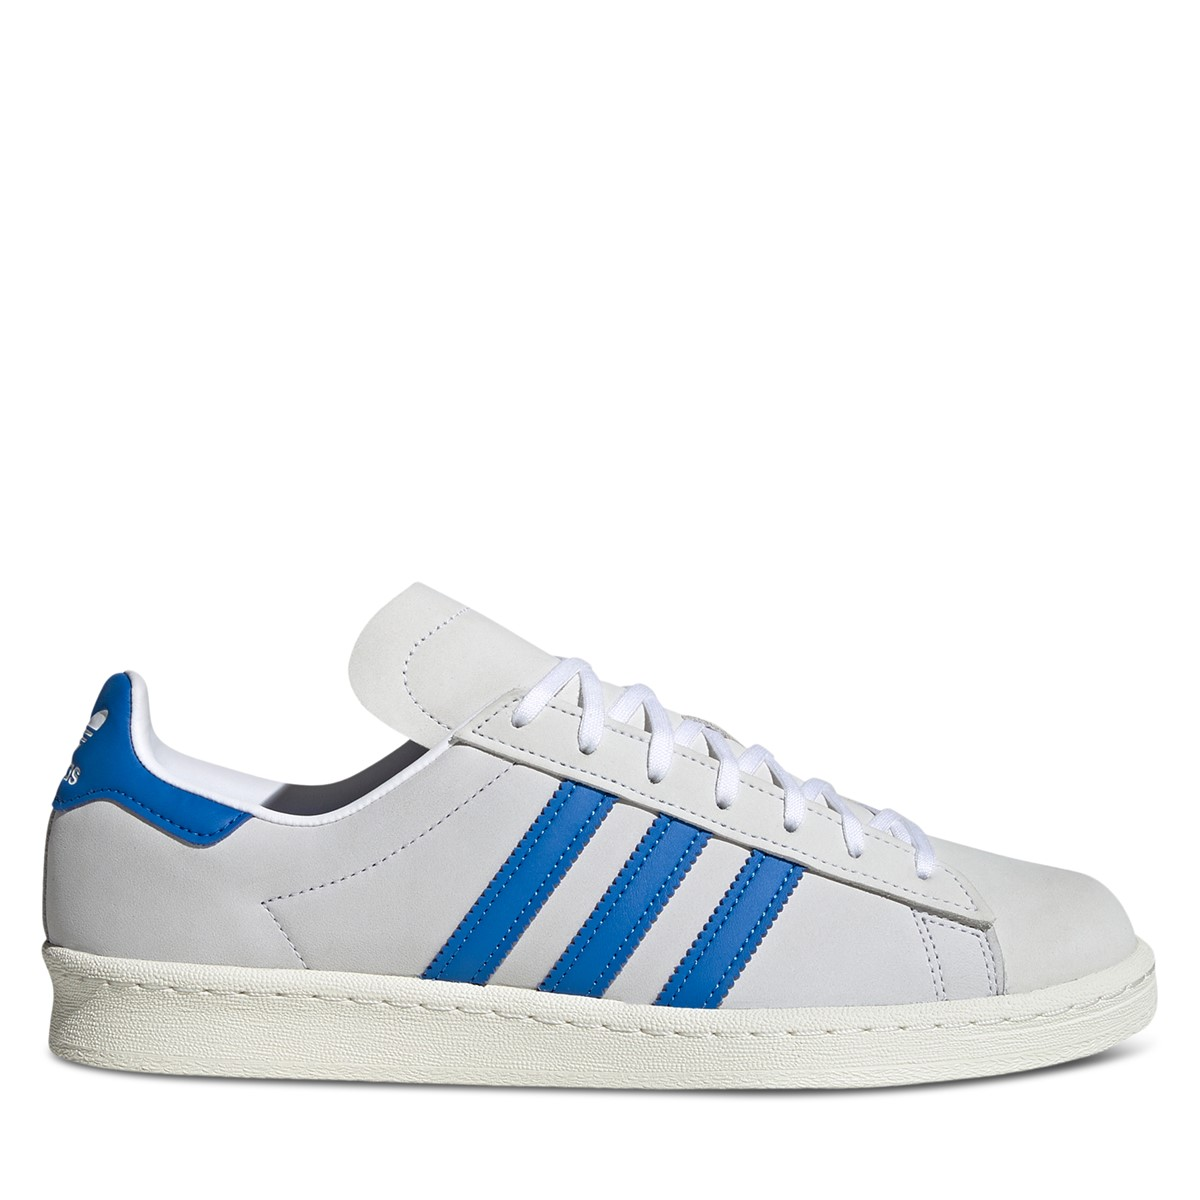 Men's Campus Sneakers in Off-White